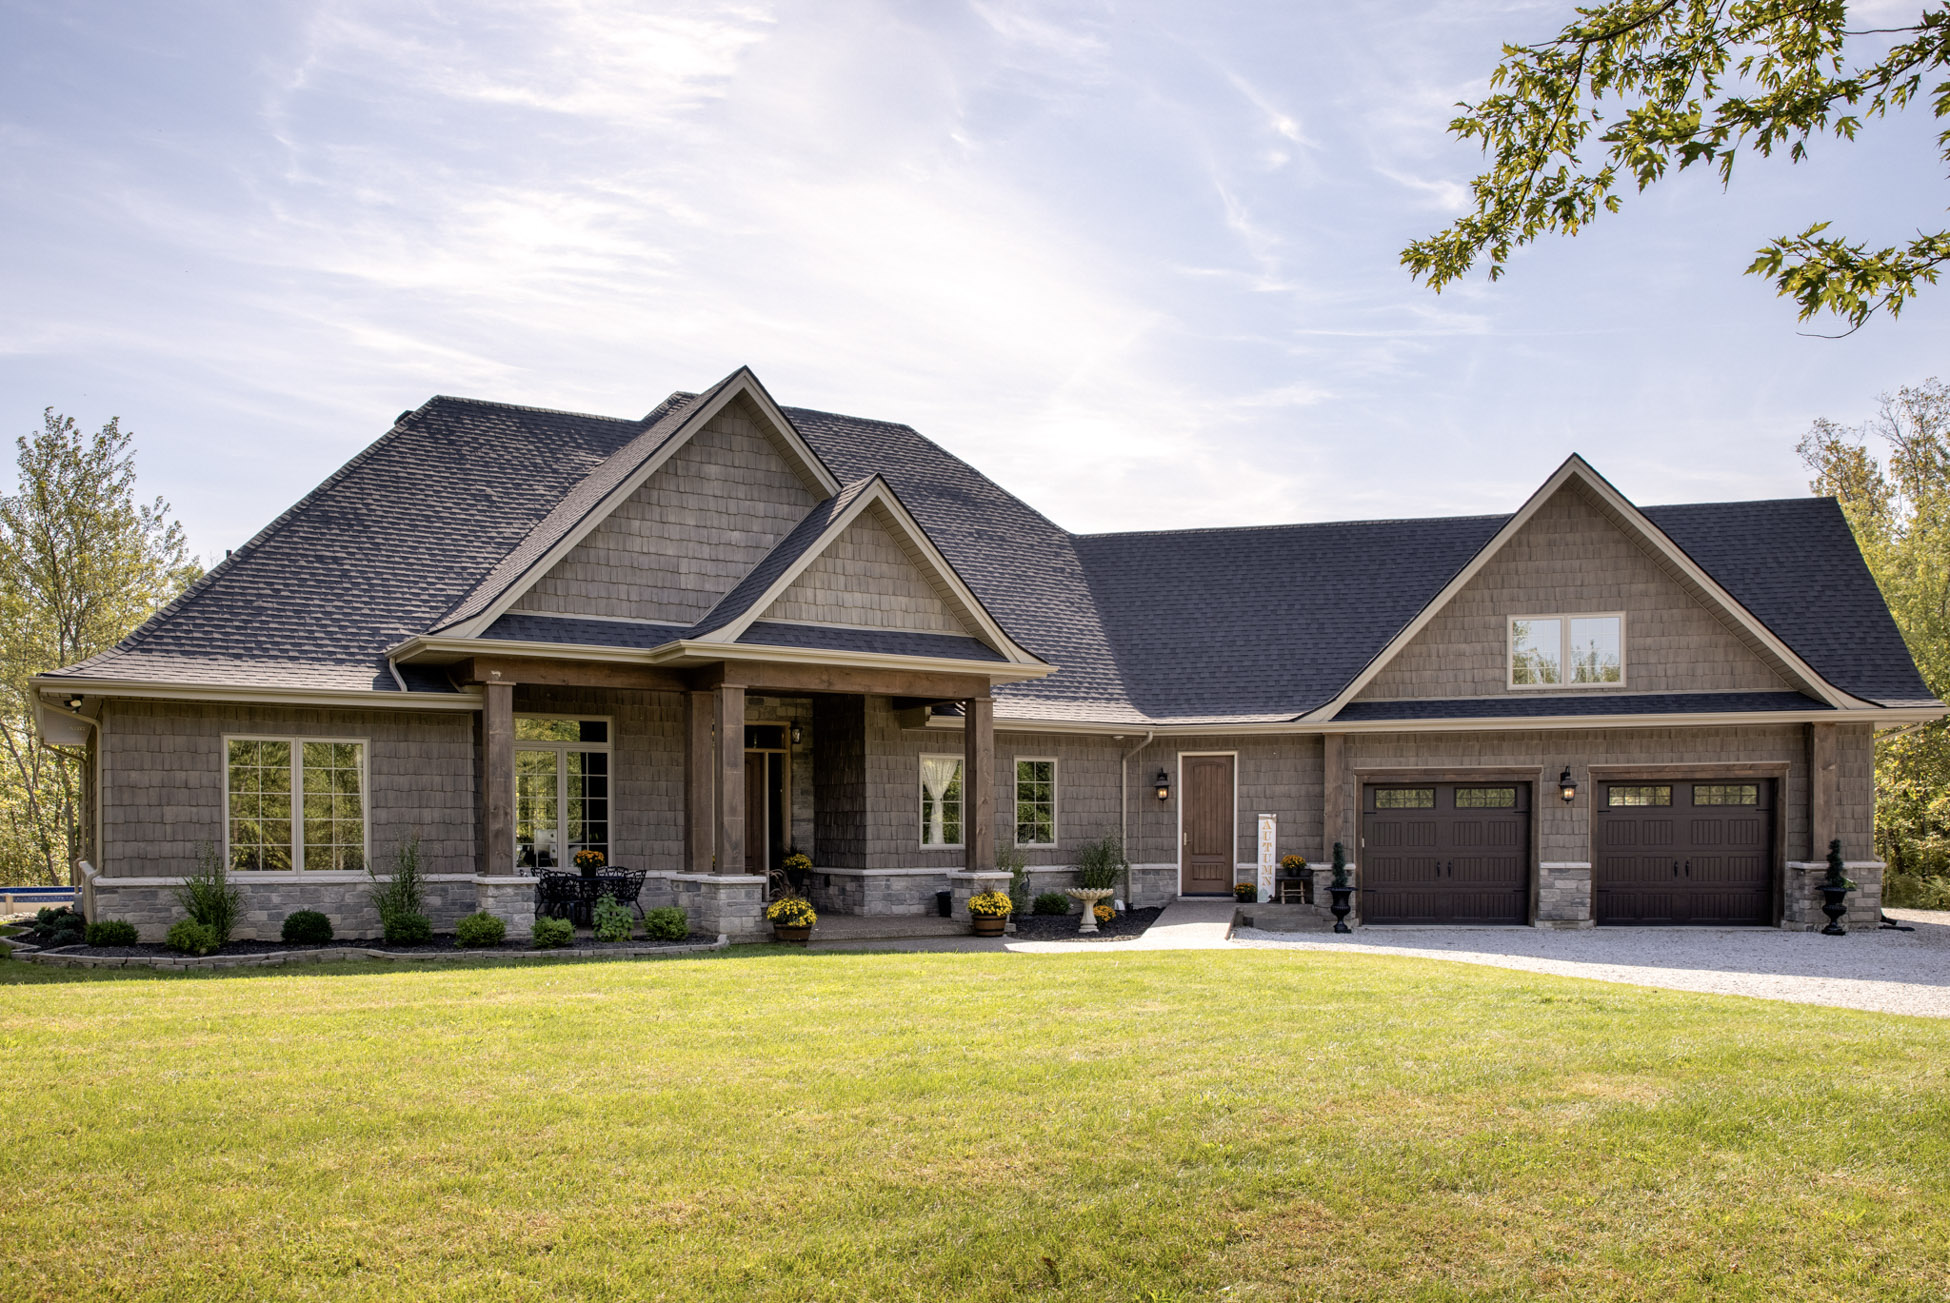 front exterior of large bungalow home